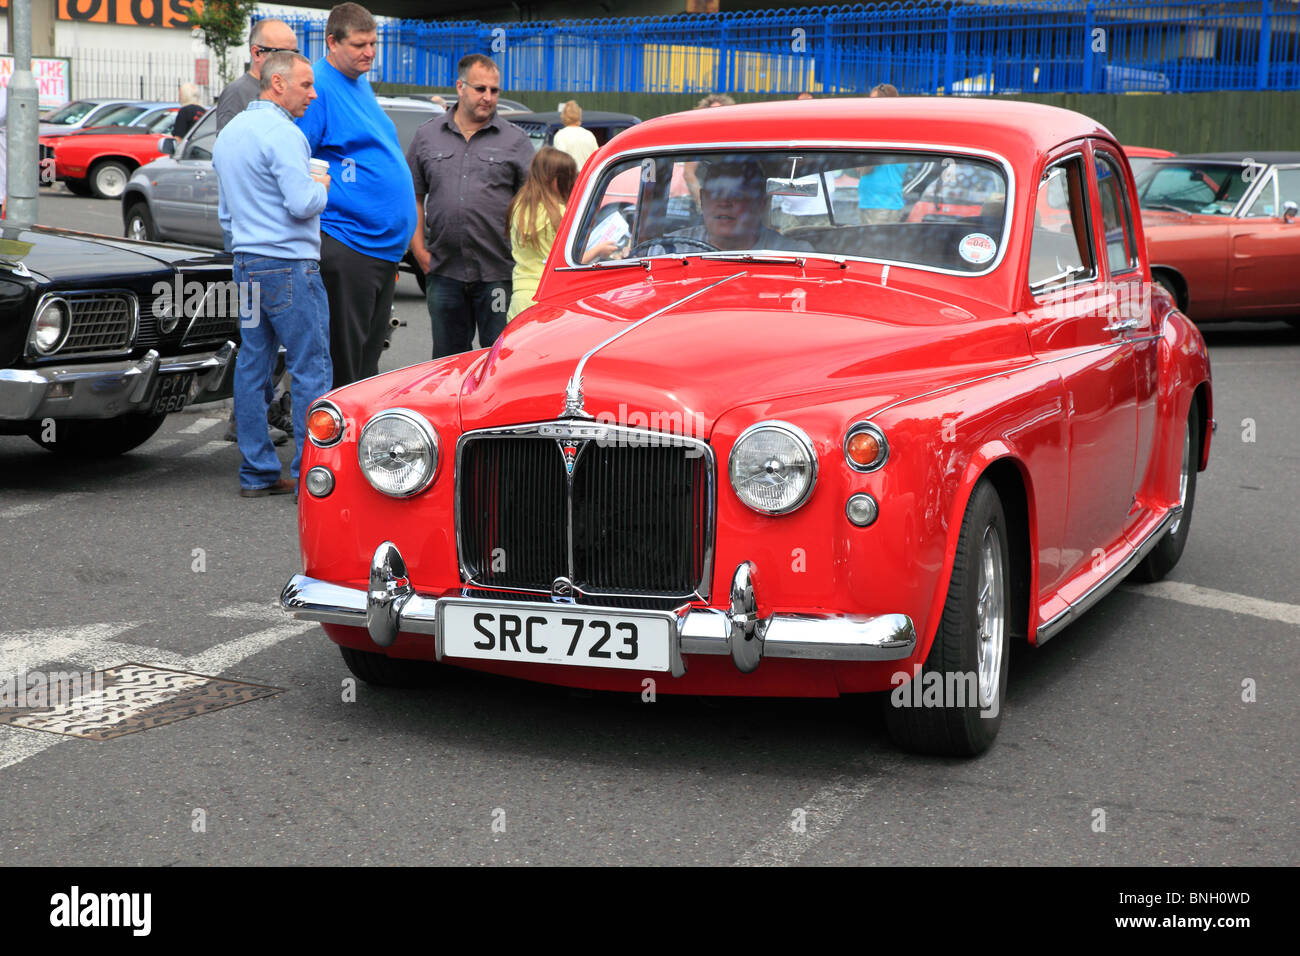 Rover 100 old car in New Malden, UK Stock Photo: 30492041 - Alamy